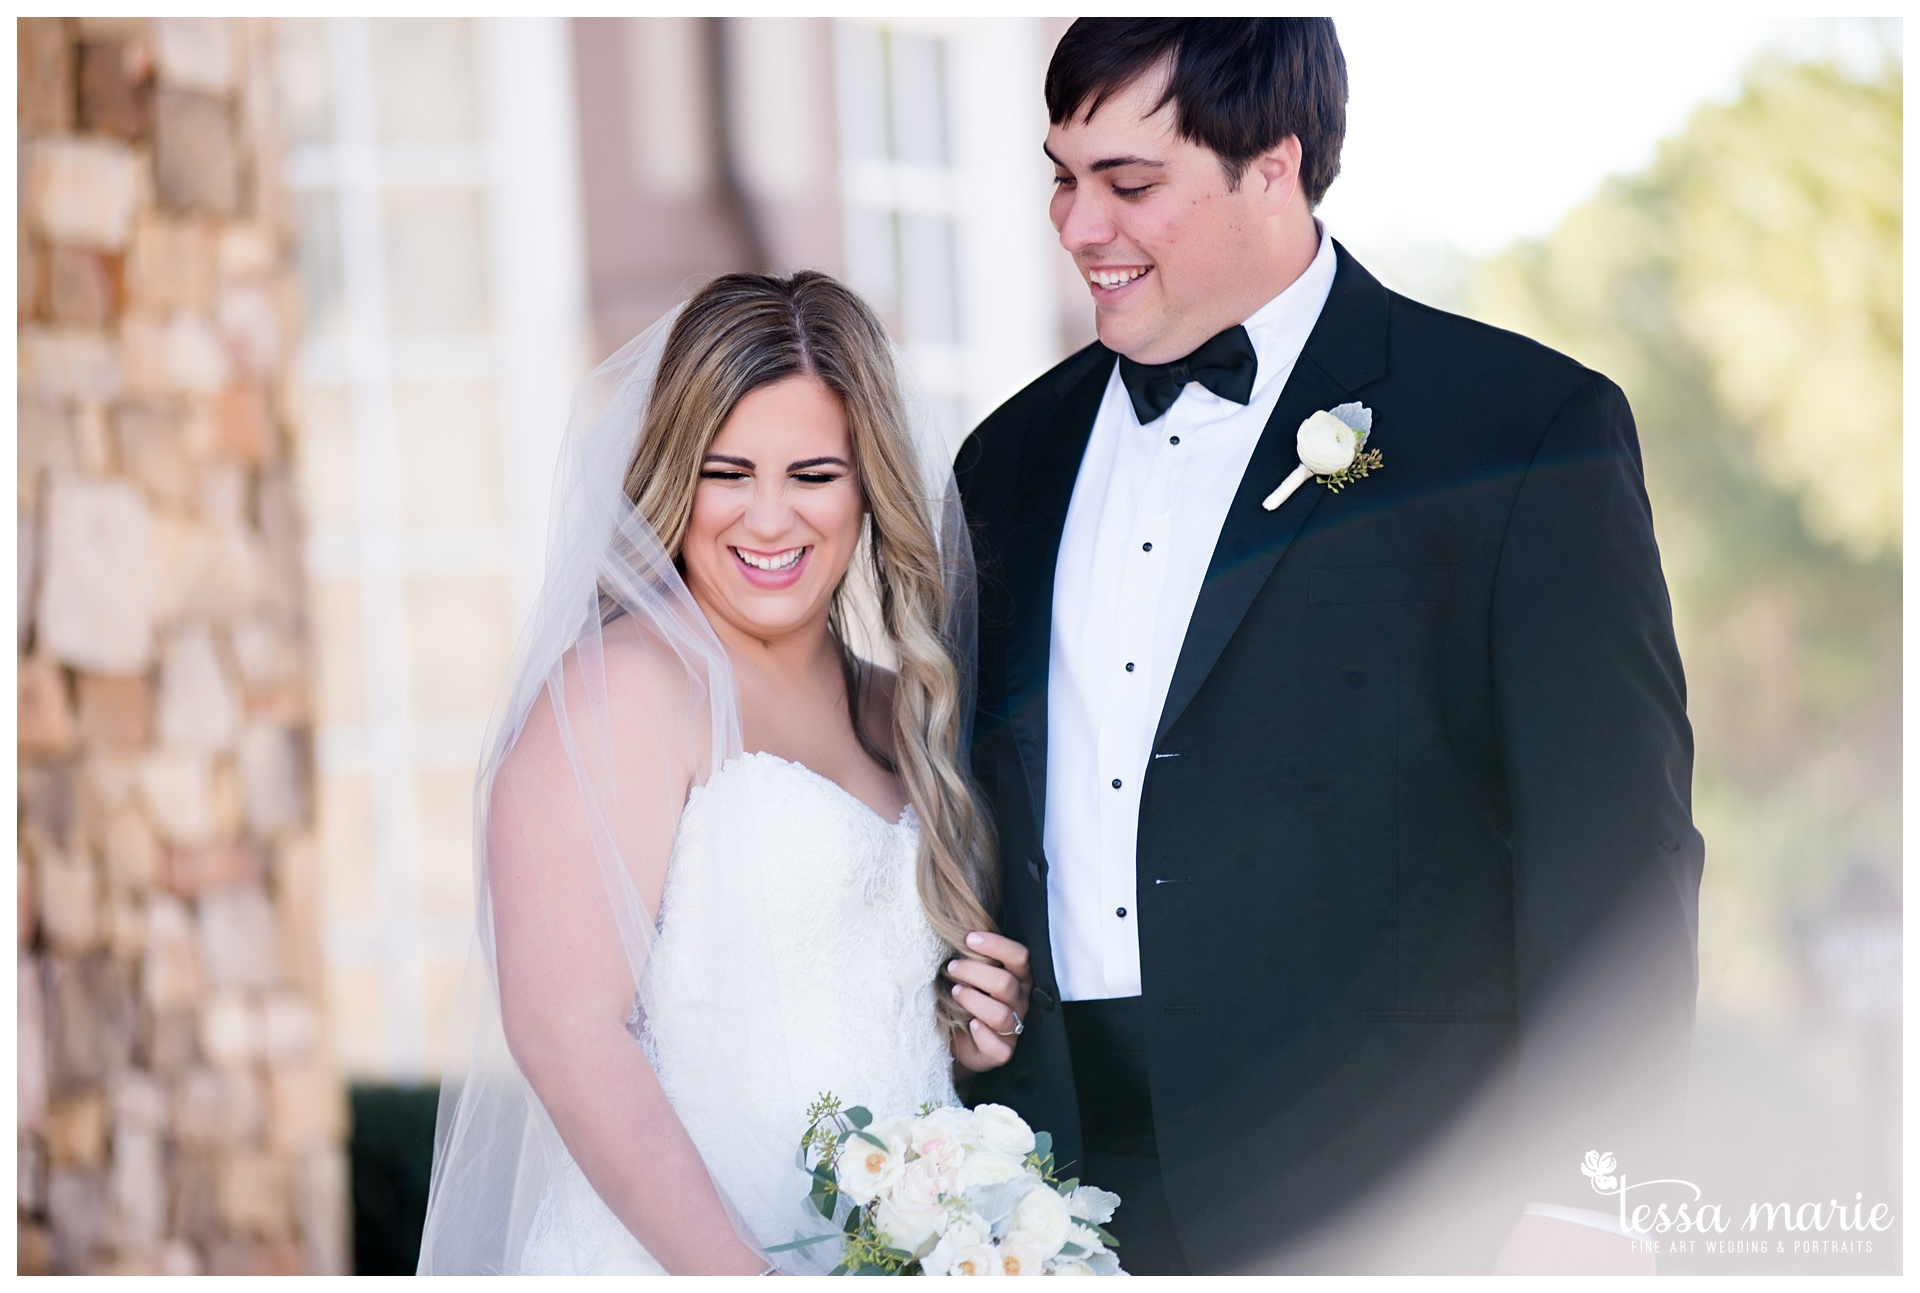 tessa_marie_weddings_legacy_story_focused_wedding_pictures_atlanta_wedding_photographer_0091